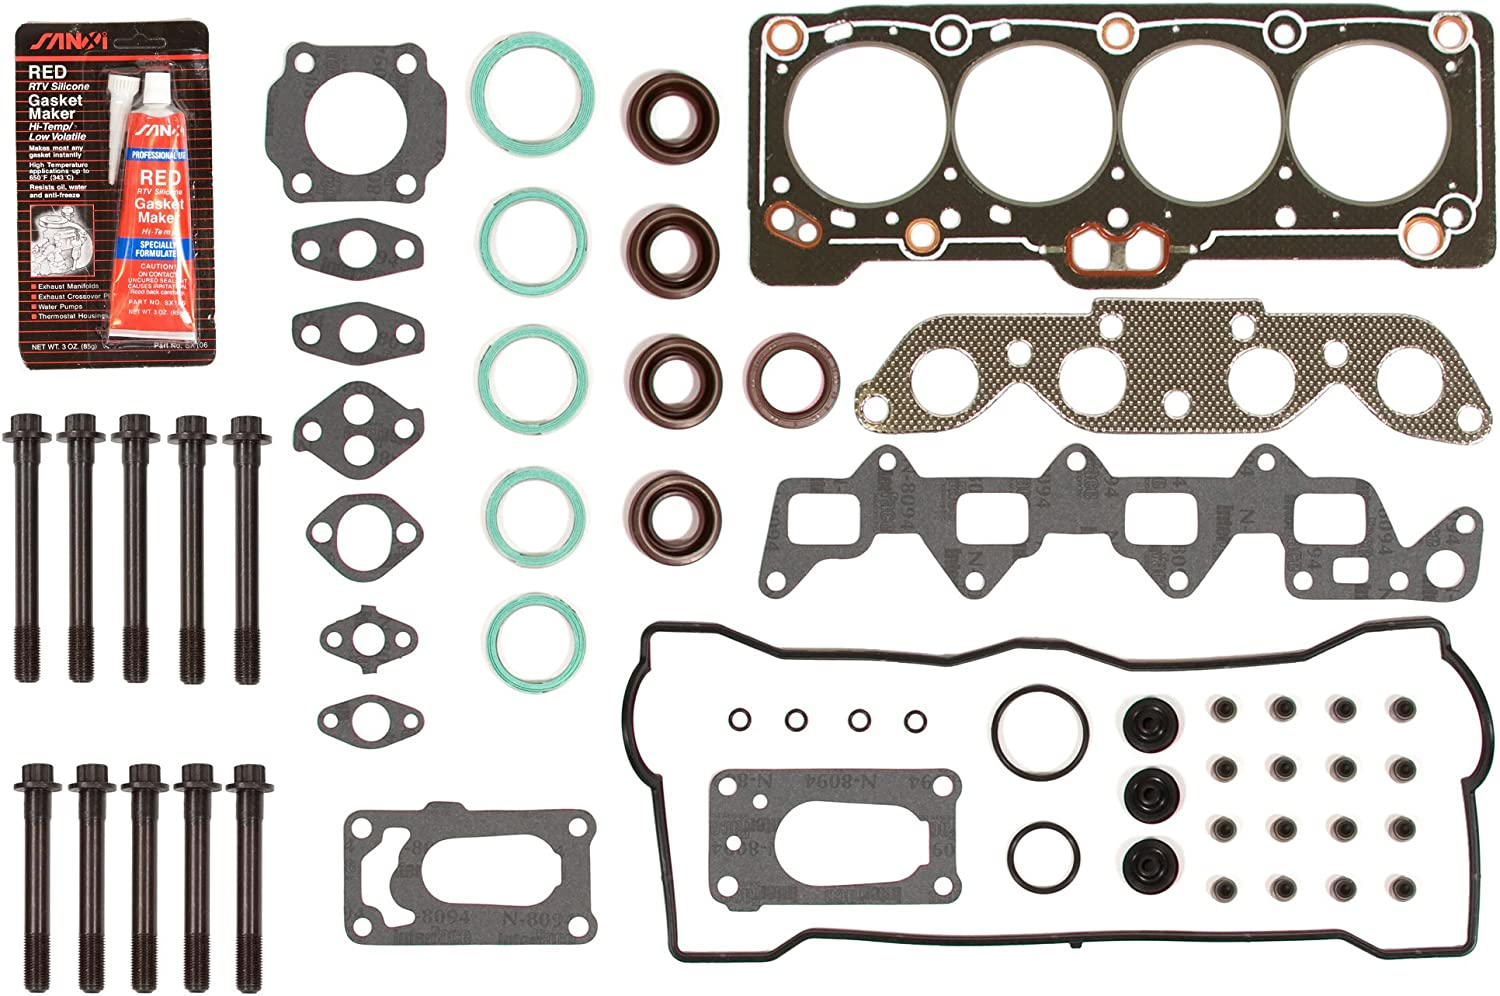 Evergreen HSHB2011 Cylinder Head Gasket Set Head Bolt